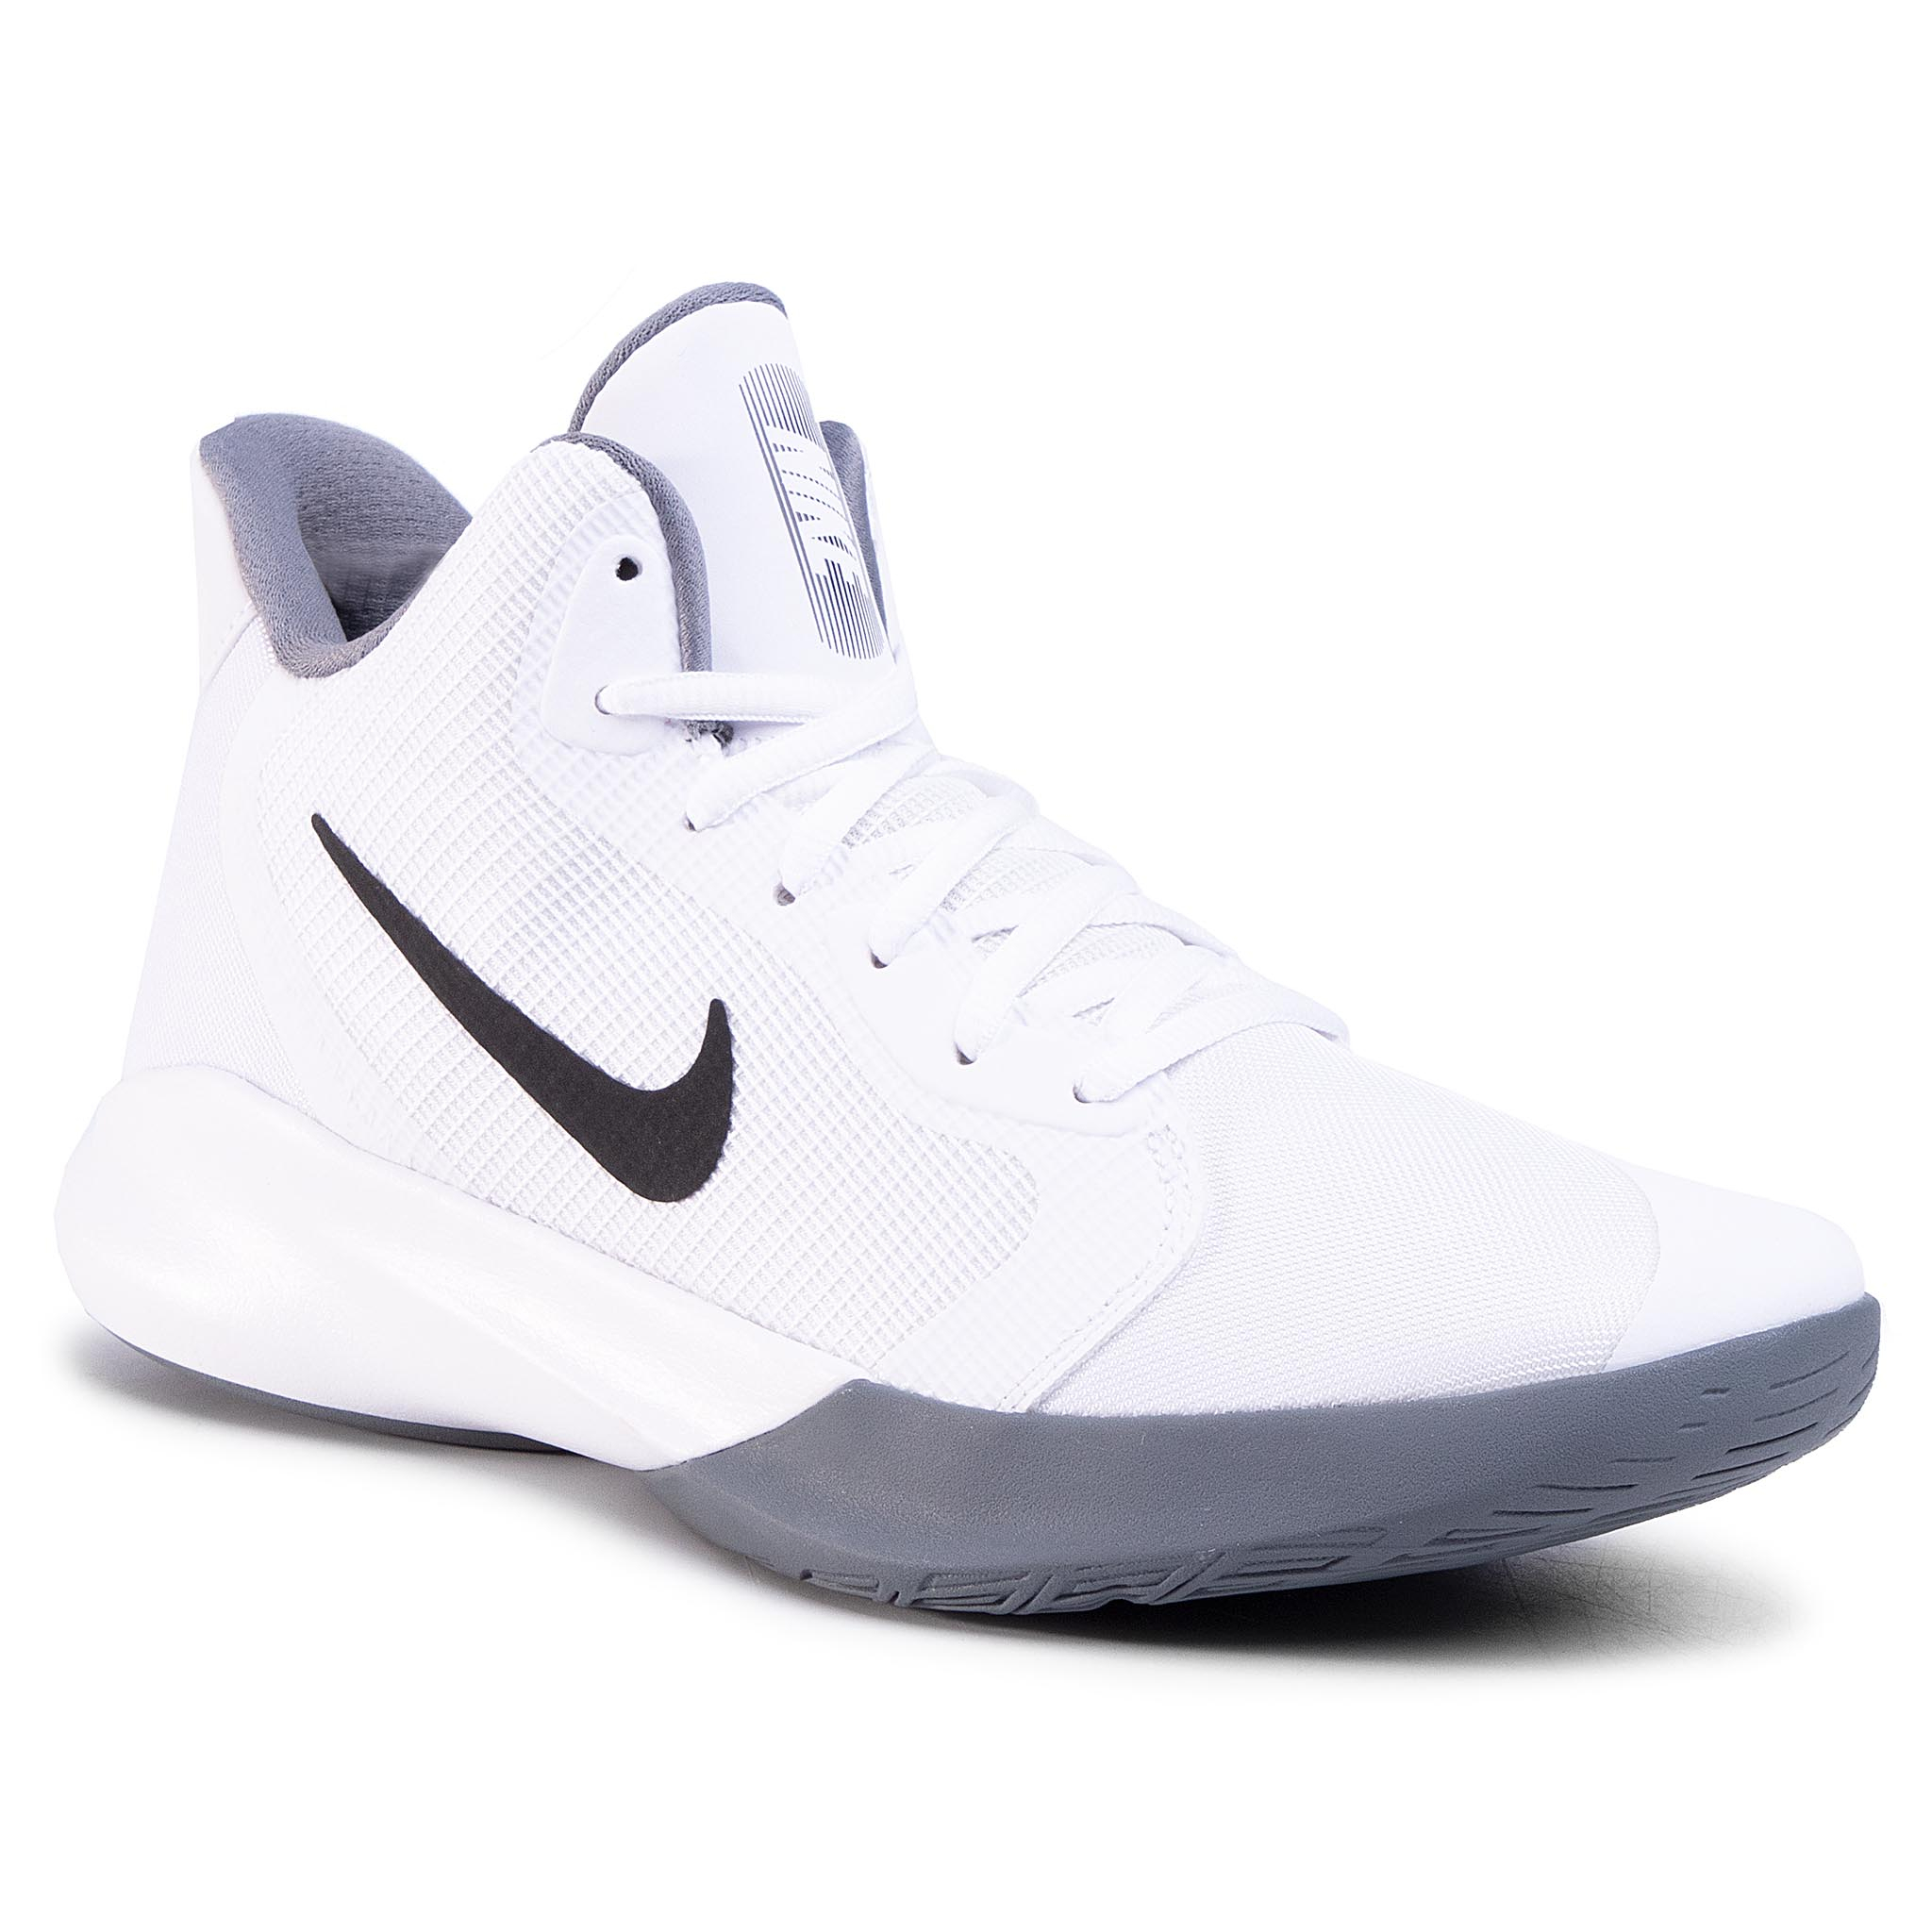 Pantofi Nike - Precision Iii Aq7495 100 White/Black imagine